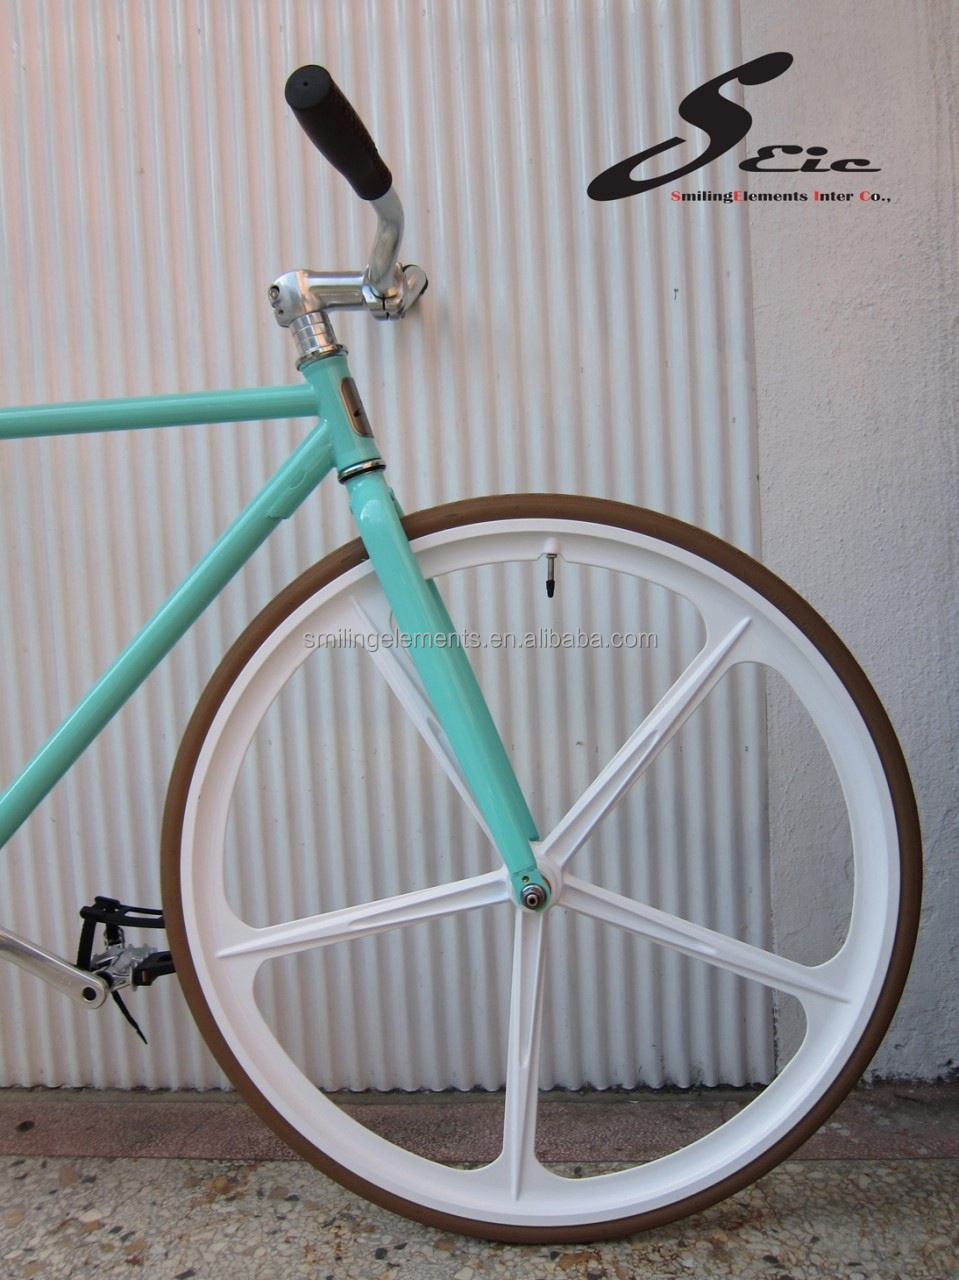 Single speed bike with five spokes bicycle wheel fixed gear